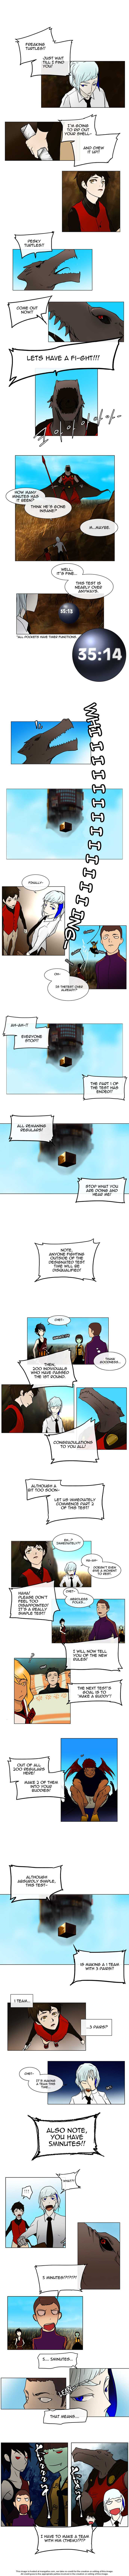 Tower of God 8 Page 2